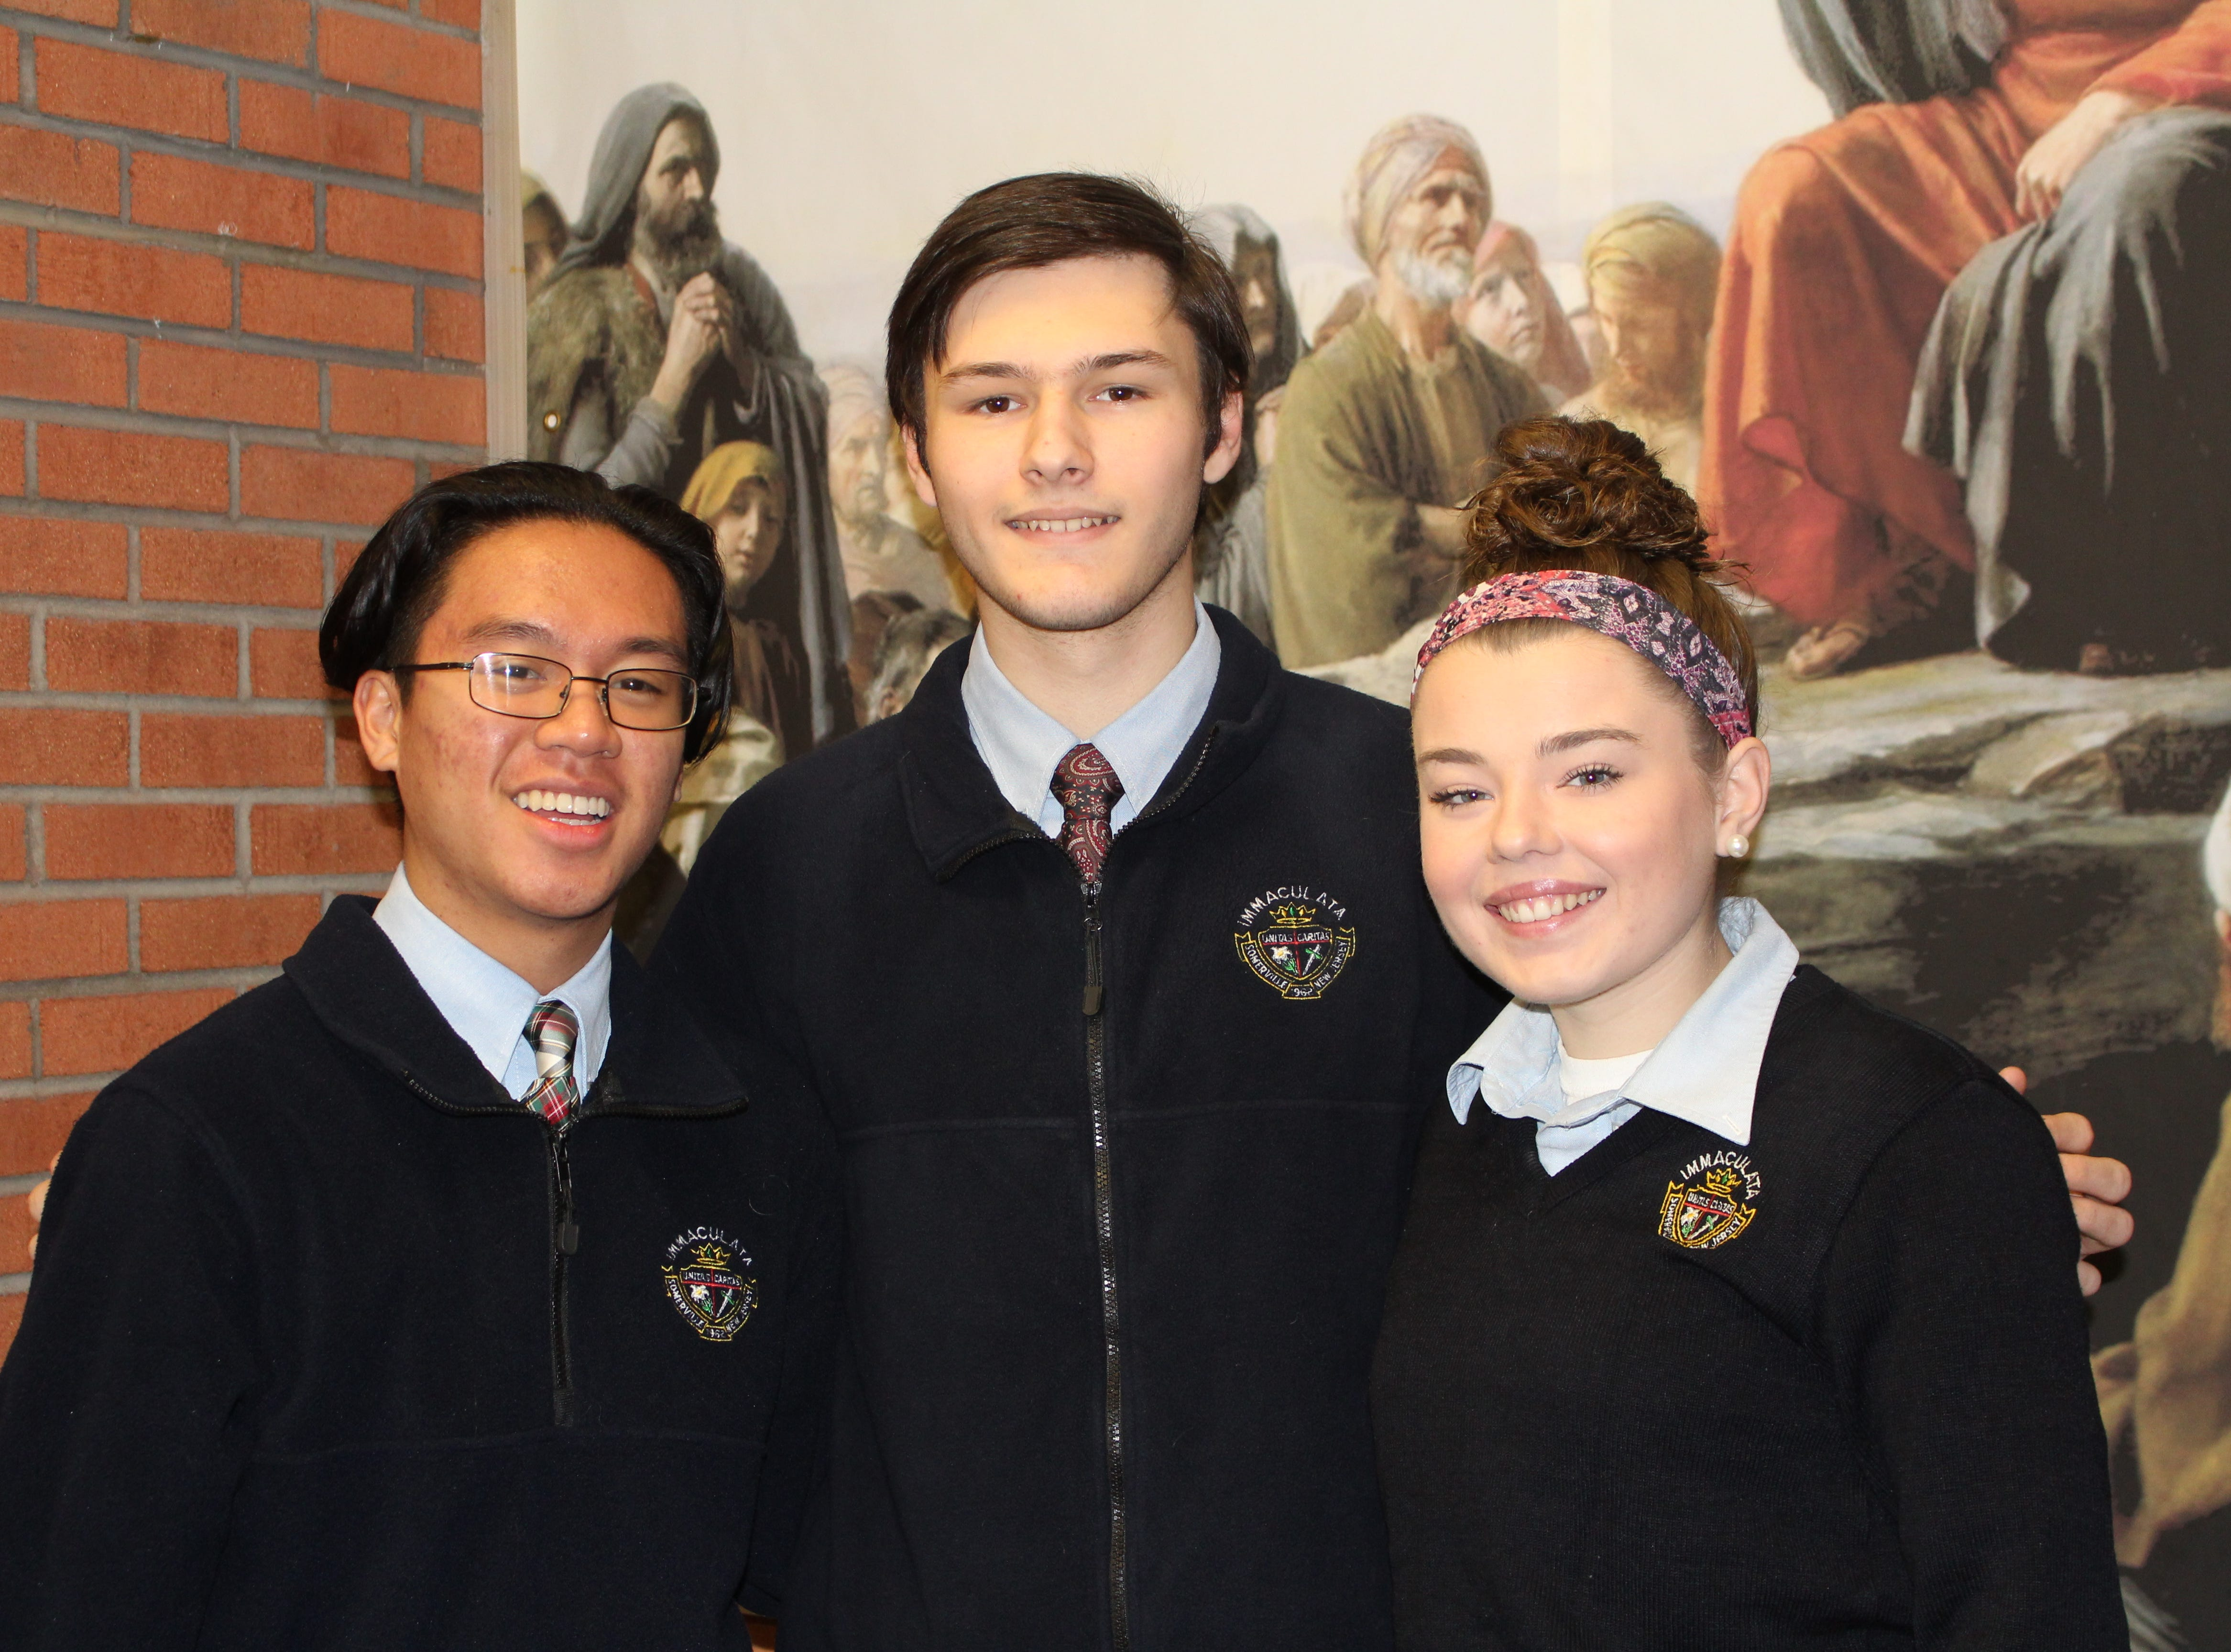 Three Immaculata students, Bridgette LeBoeuf (right) of Milford , Gerard Rabulan (left) of Somerville, and  GianMarco Scotti (center) of Milltown, were selected among the most musically talented high school students in the Eastern region of the country.  They will join the over 700 performers (from 11 states, D.C., and Europe), who will participate in the 2019 National Association for Music Education's (NAFME) All-Eastern Honors Ensembles this spring.